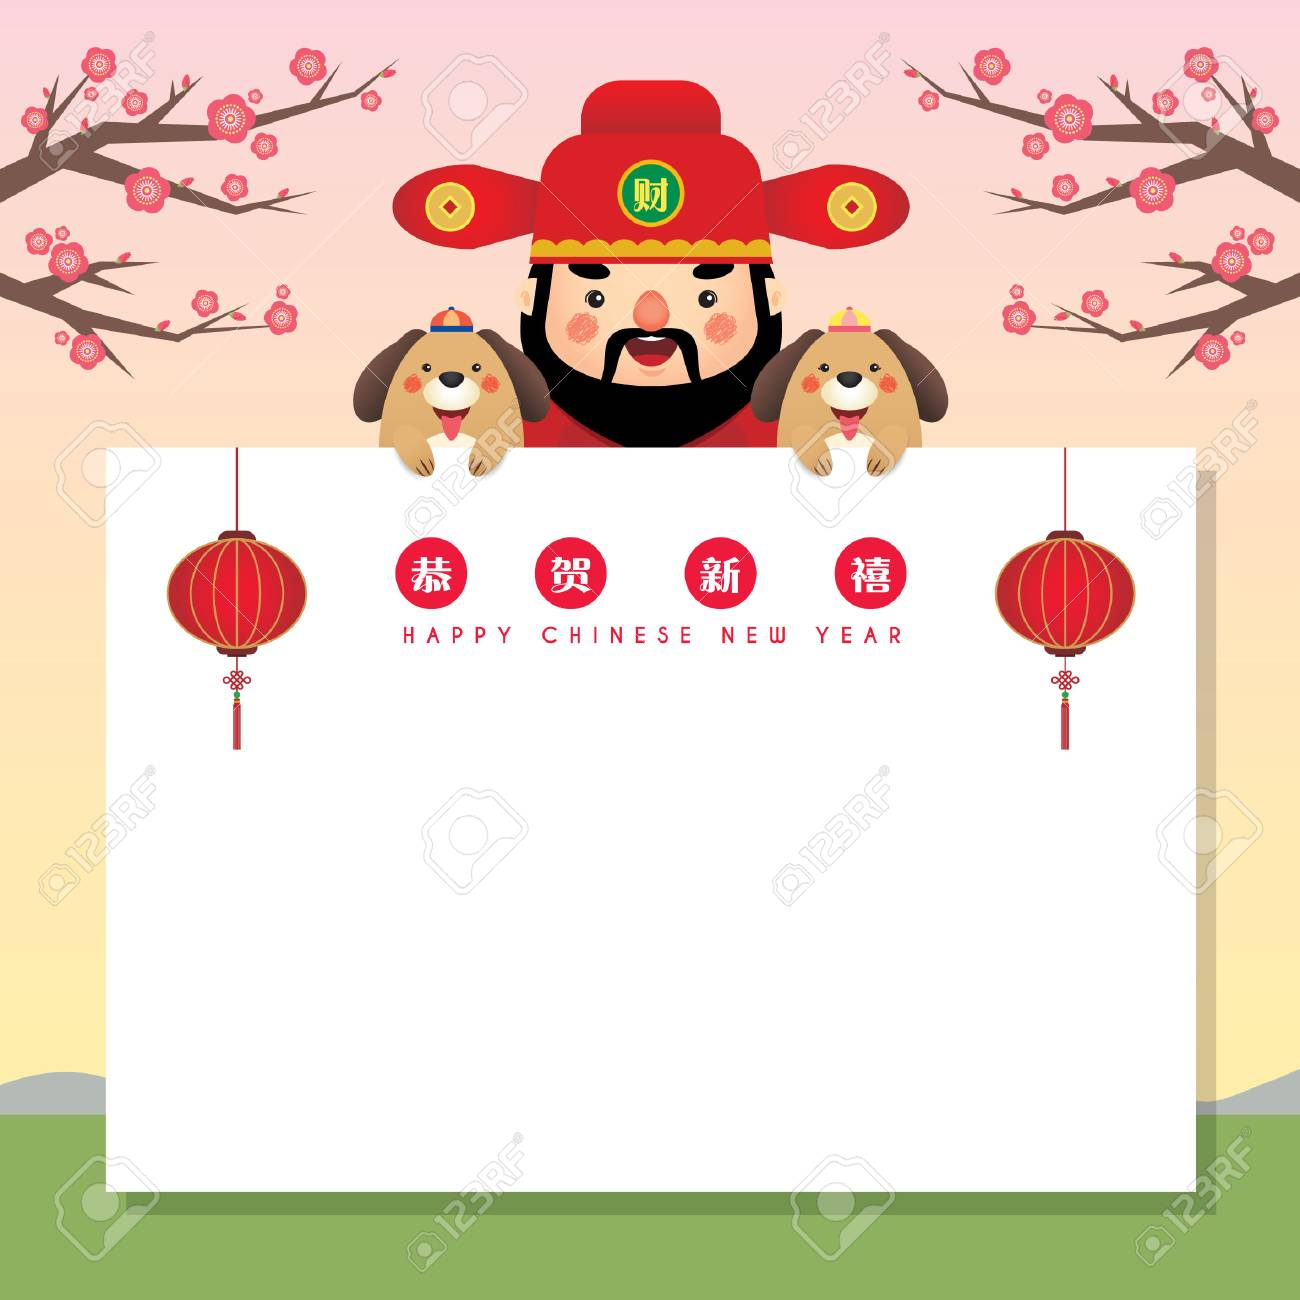 chinese new year illustration with lanterns cartoon dogs and god of wealth holding blank paper